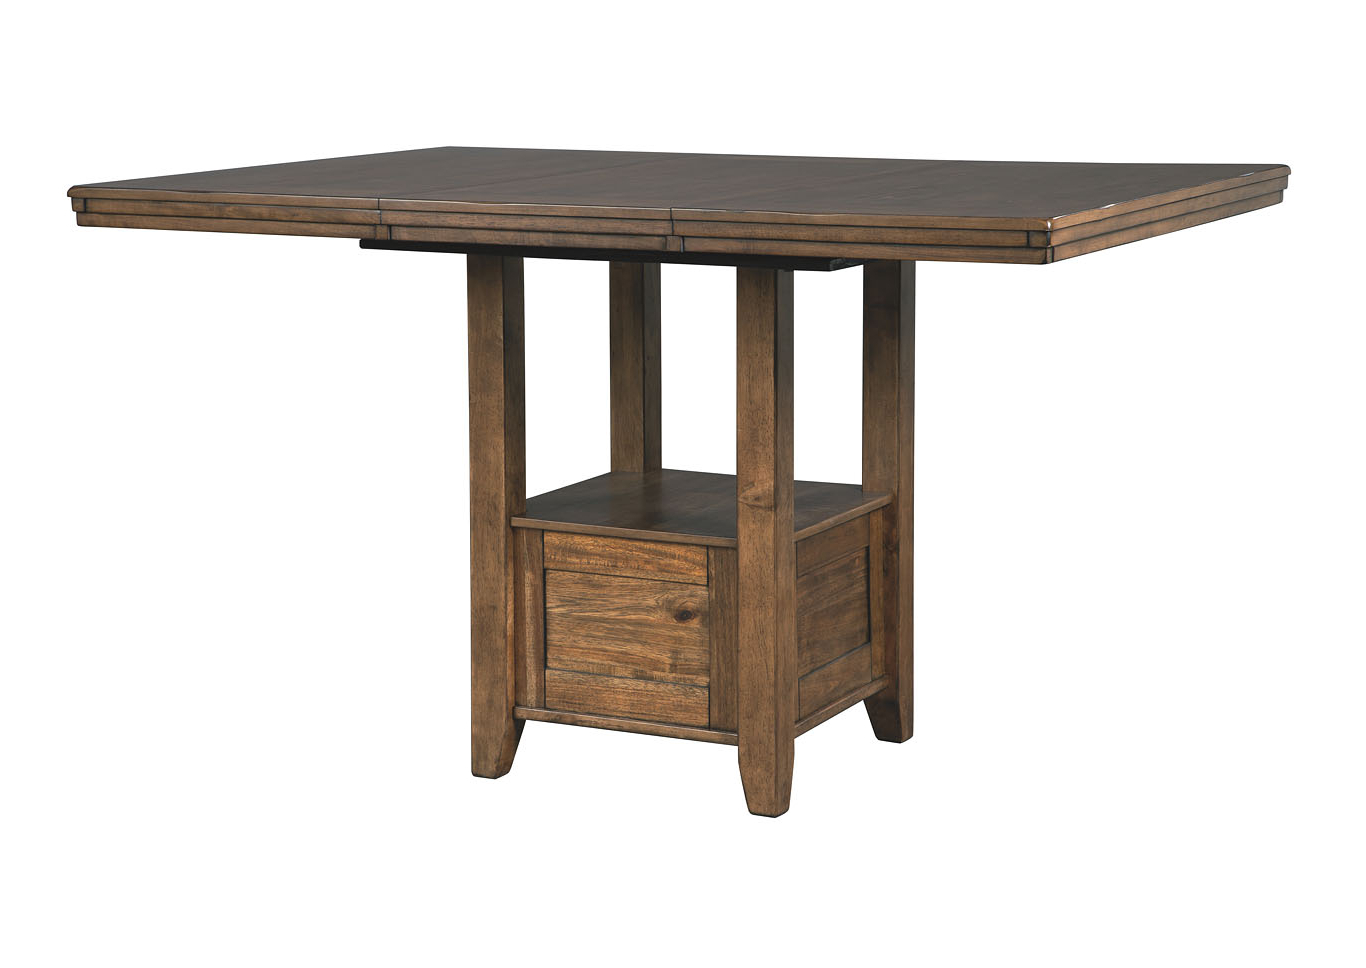 Transitional 4 Seating Double Drop Leaf Casual Dining Tables Within Best And Newest Michael's Discount Furniture Flaybern Brown Rectangular (Gallery 19 of 30)